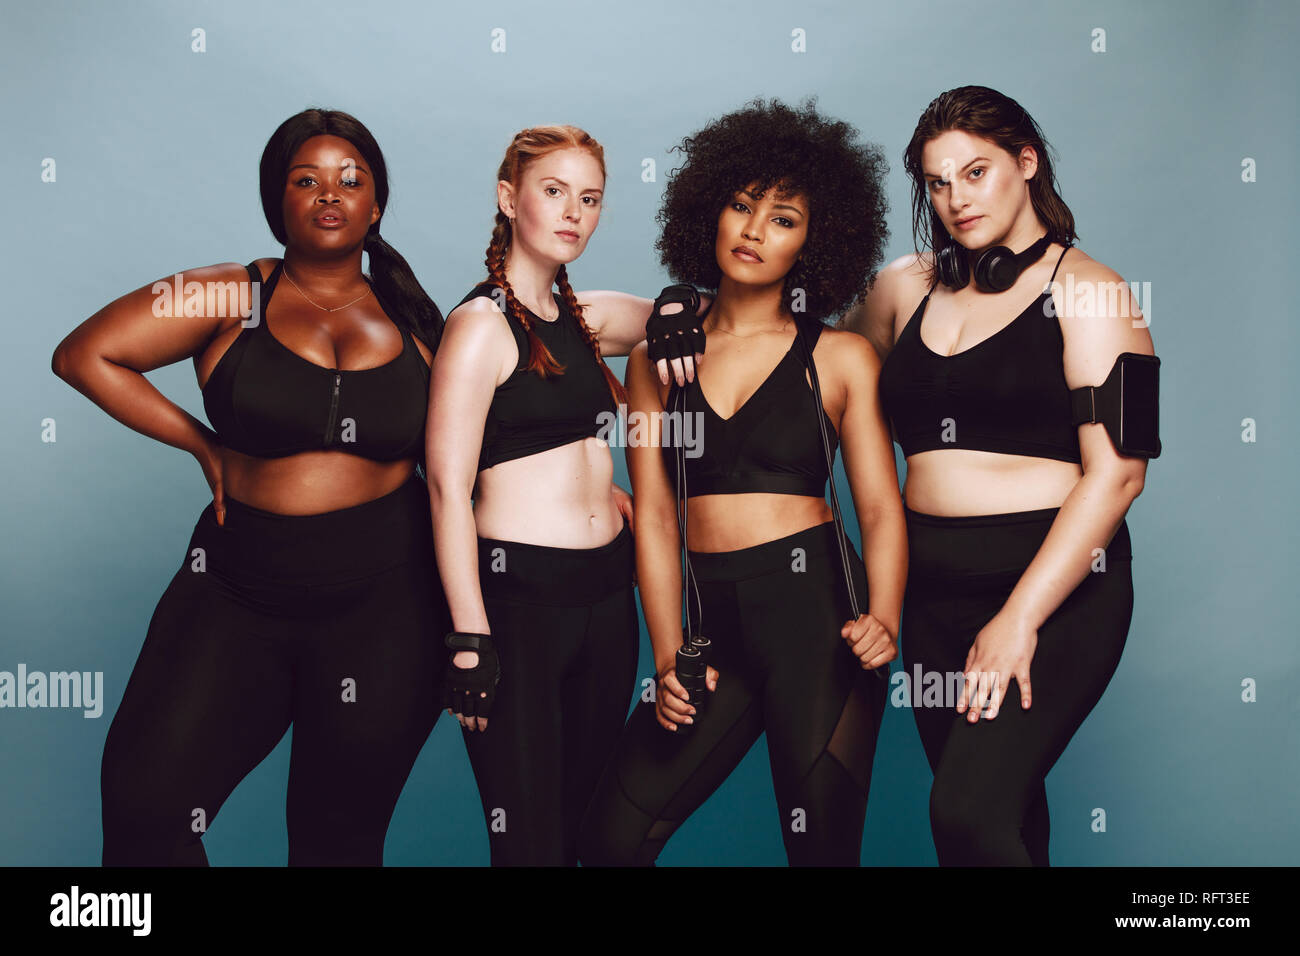 Group of women of different race and body size dressed in sportswear standing together against grey background. Diverse women in sports clothing looki - Stock Image